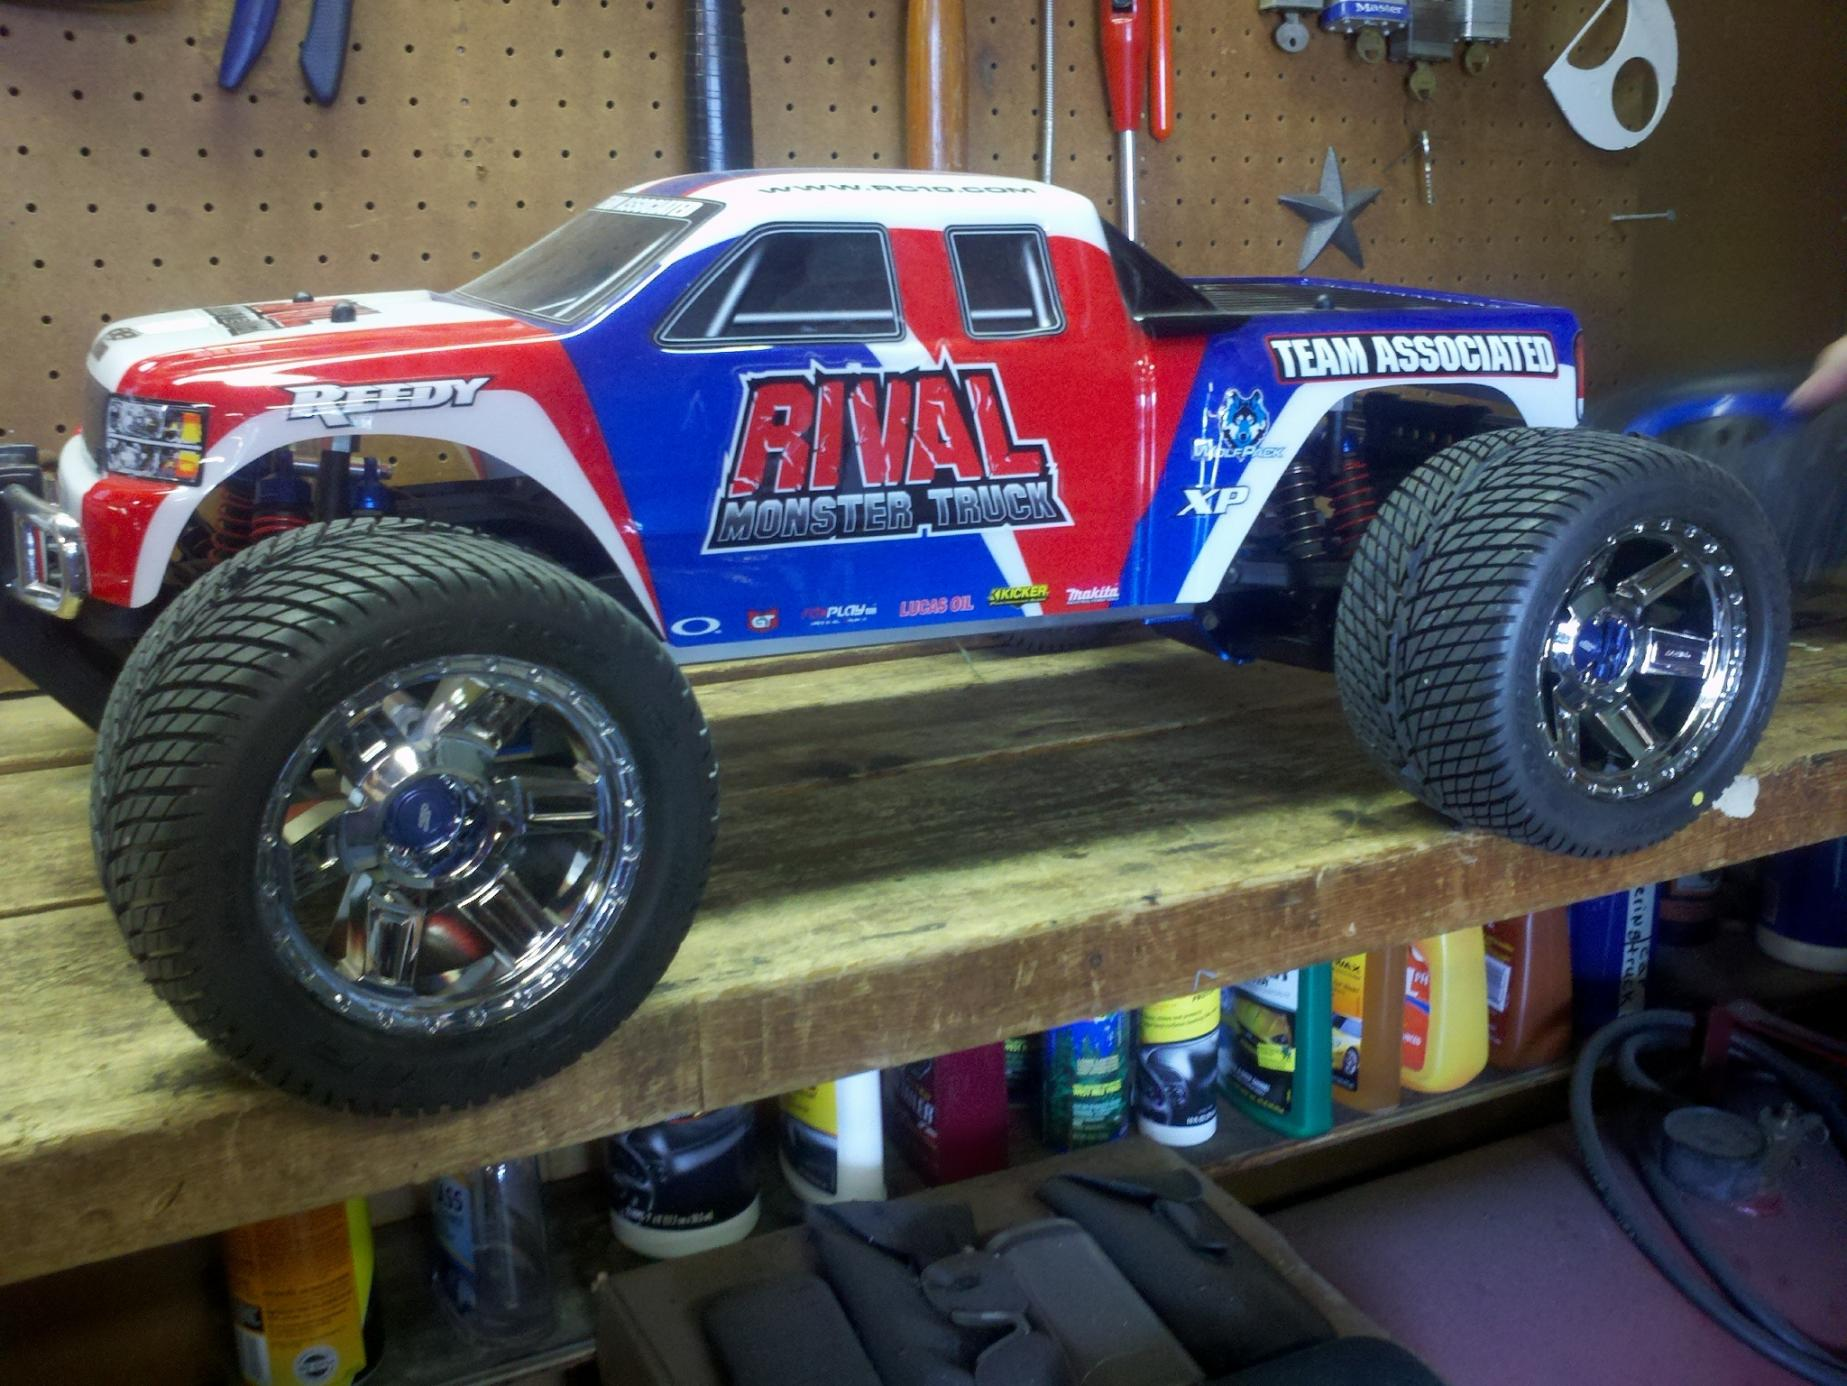 Selling Kyosho monster truck - R/C Tech Forums